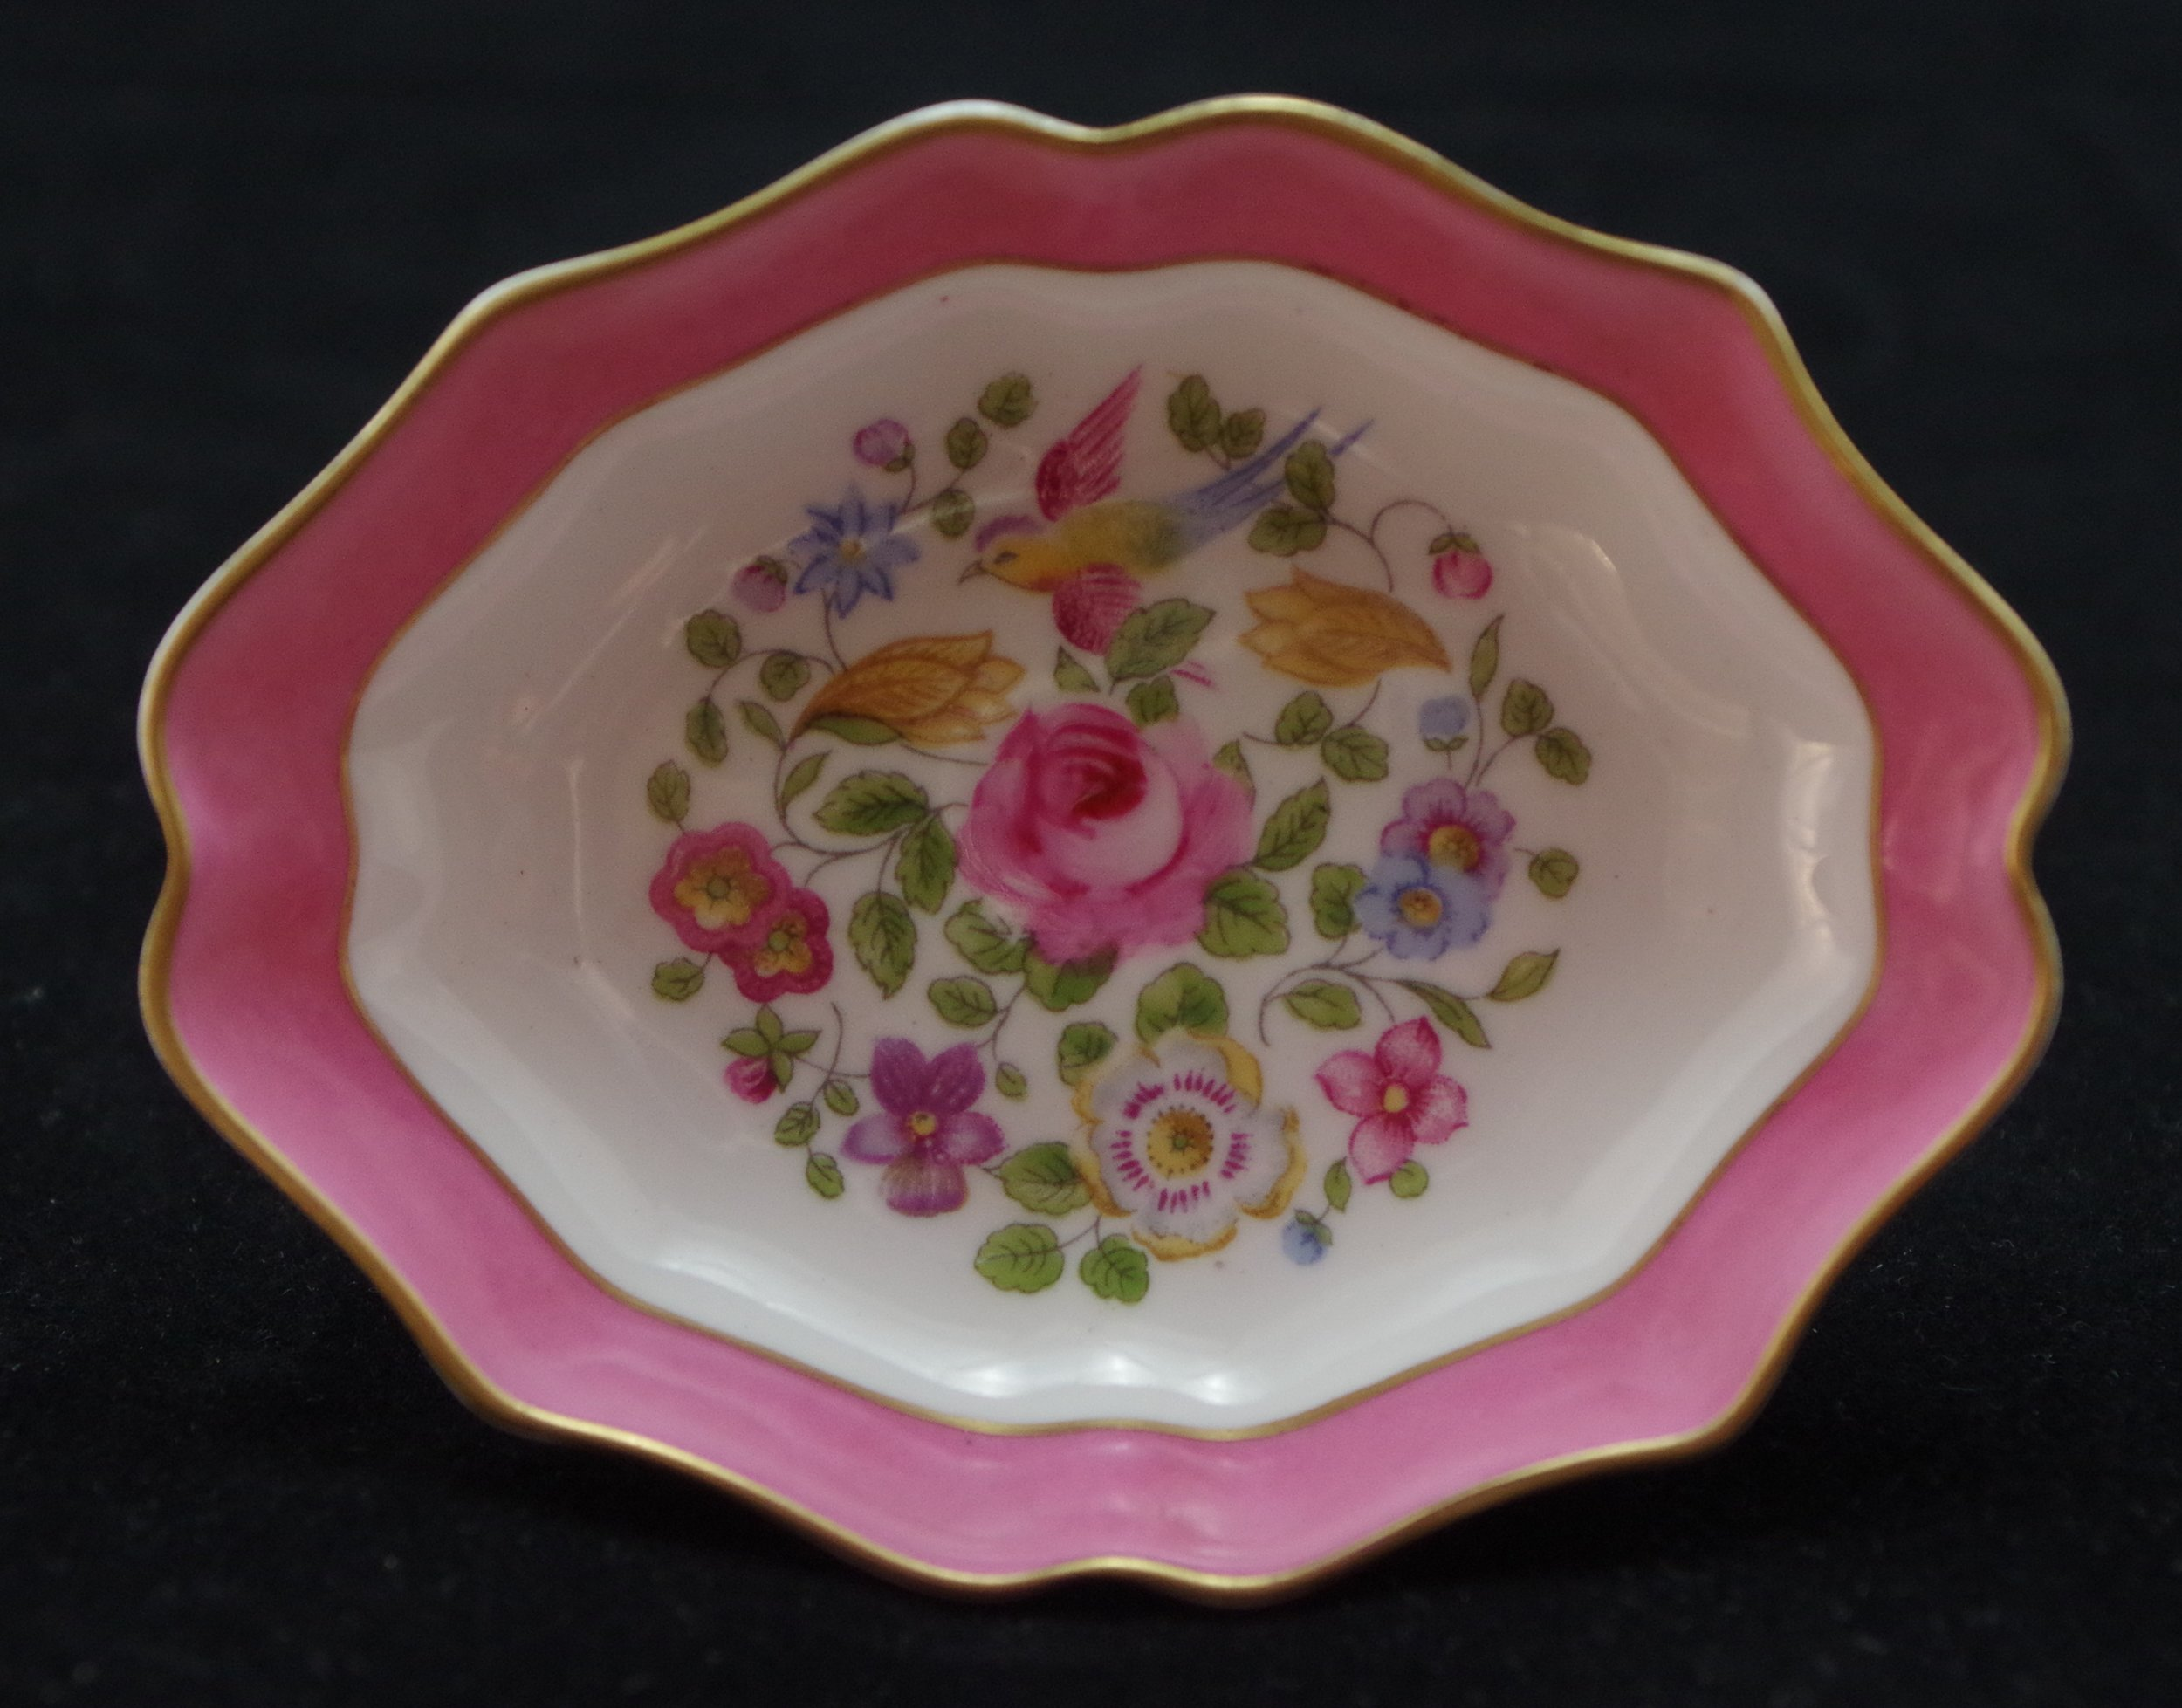 royal-crown-derby-shape-1802-oval-pink-ground-cotswold-centre